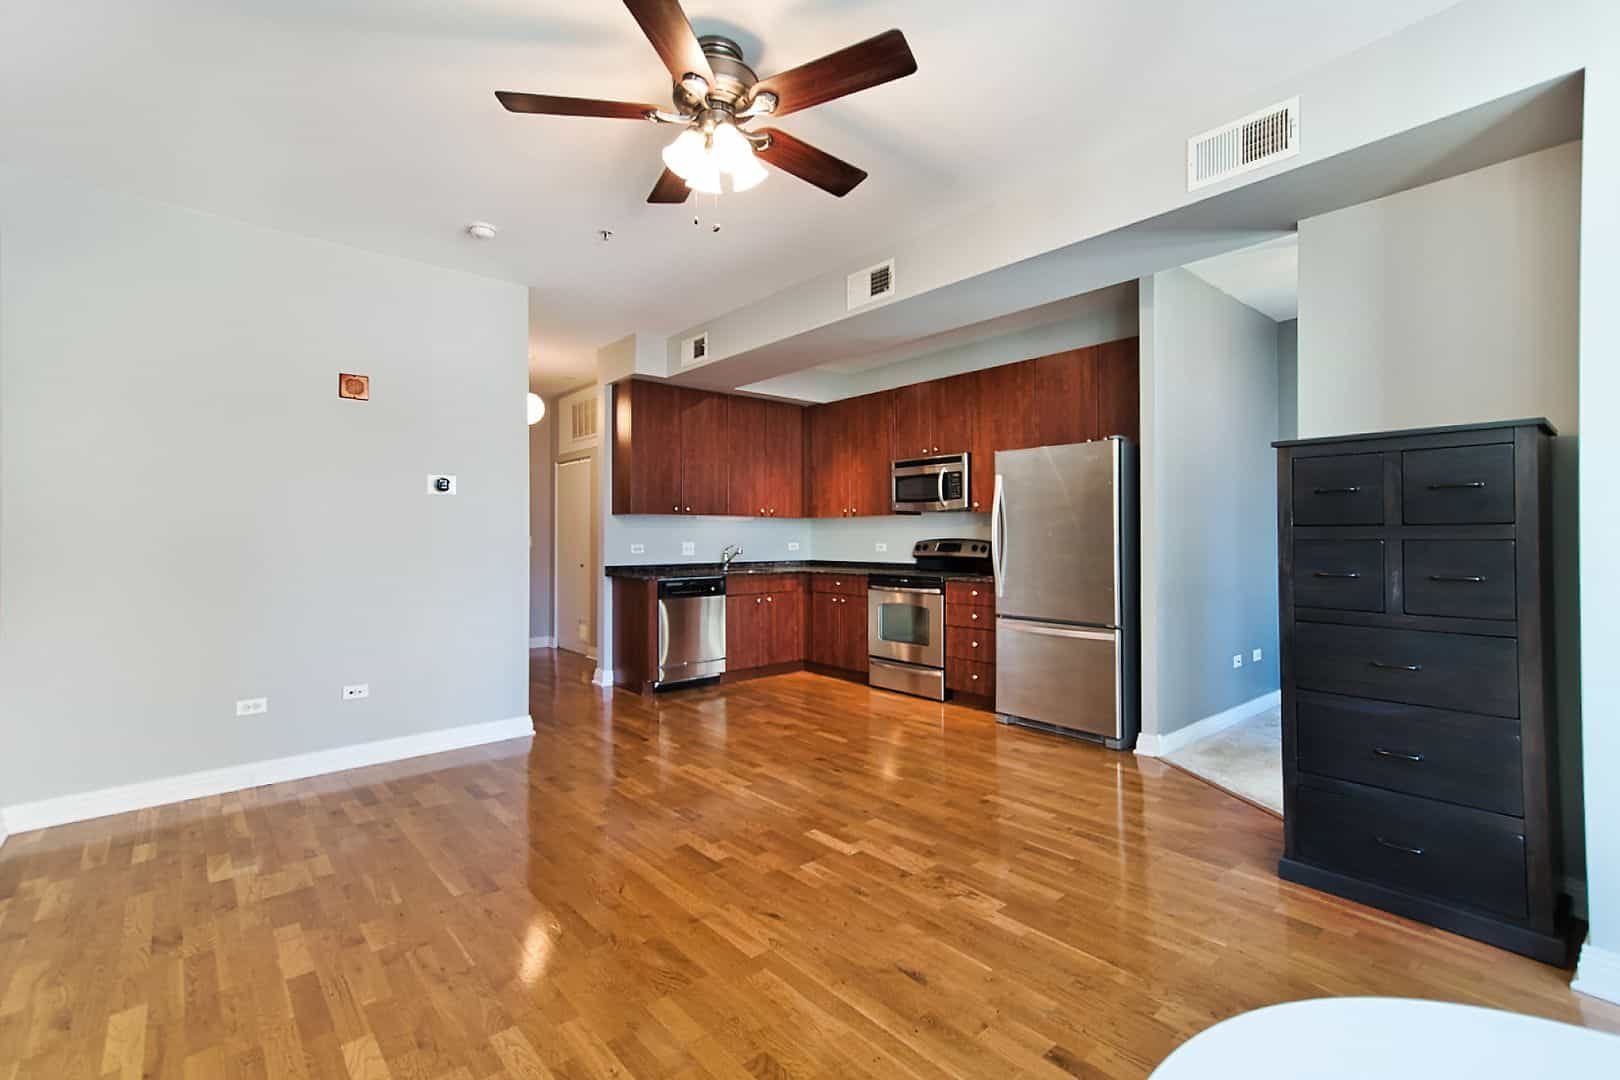 West Loop Junior One Bedroom Condo - 565 W Quincy Street, Unit 1211, Chicago, IL 60661 - Living - Dining - Kitchen